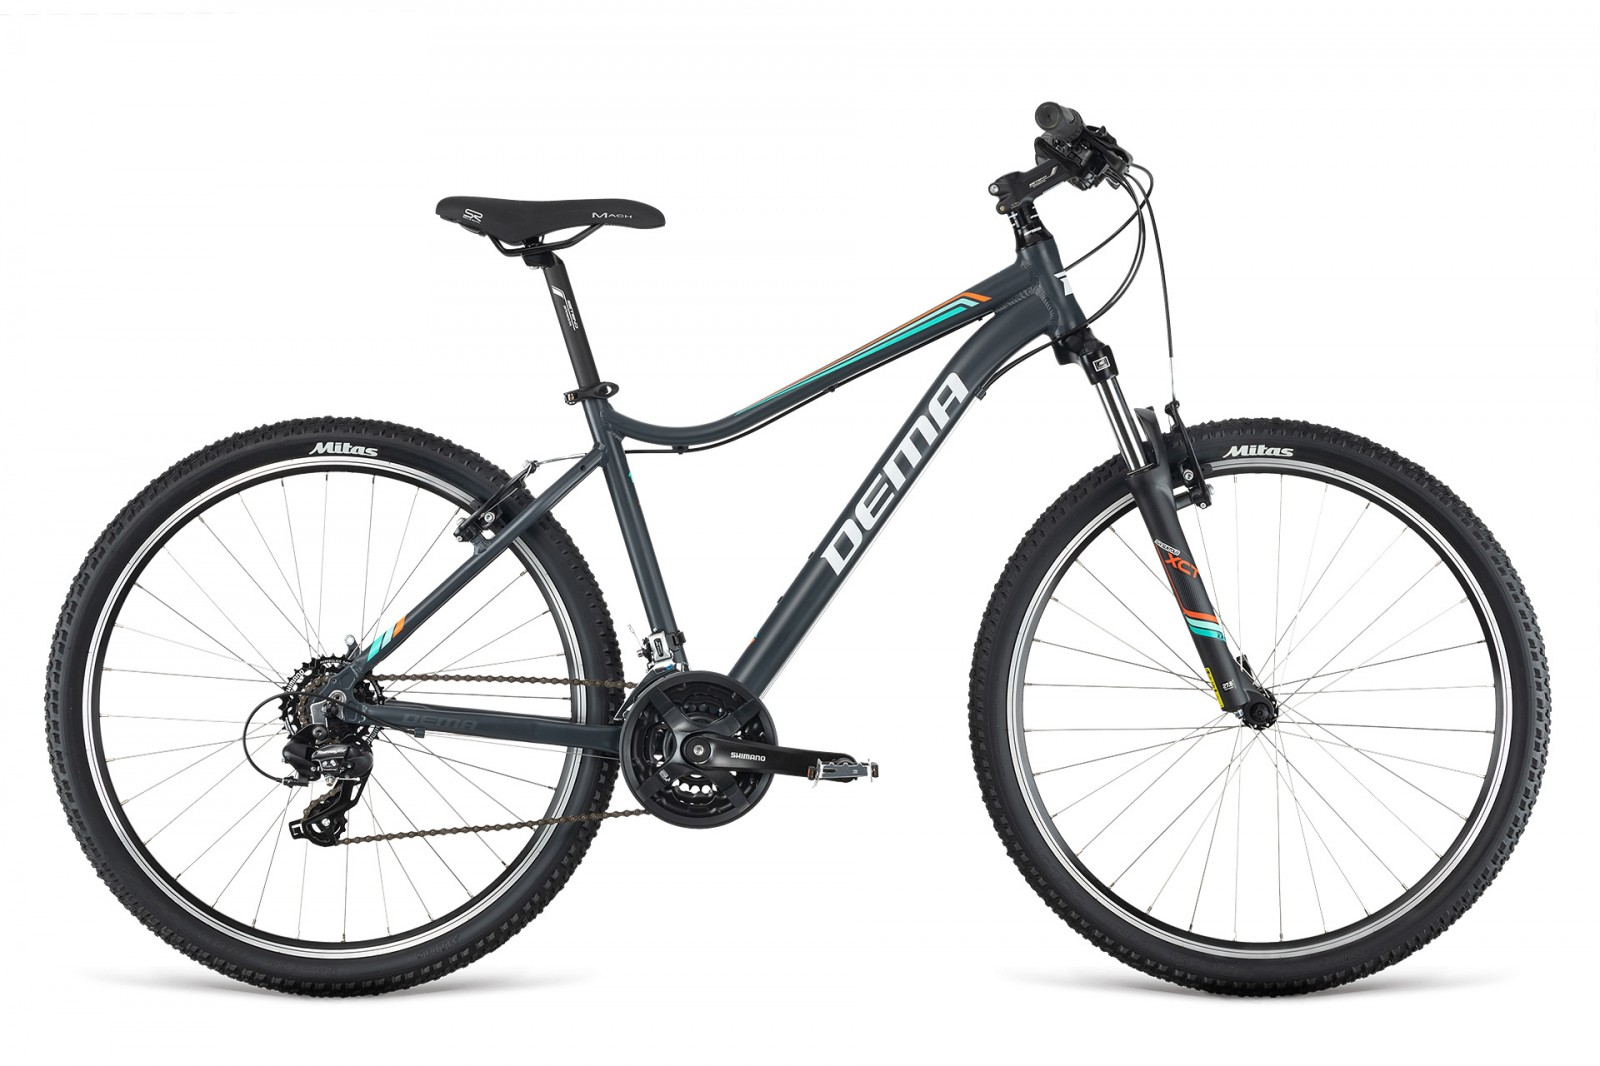 Dema TIGRA 3.0 Lady 2019 grey/white 27.5'